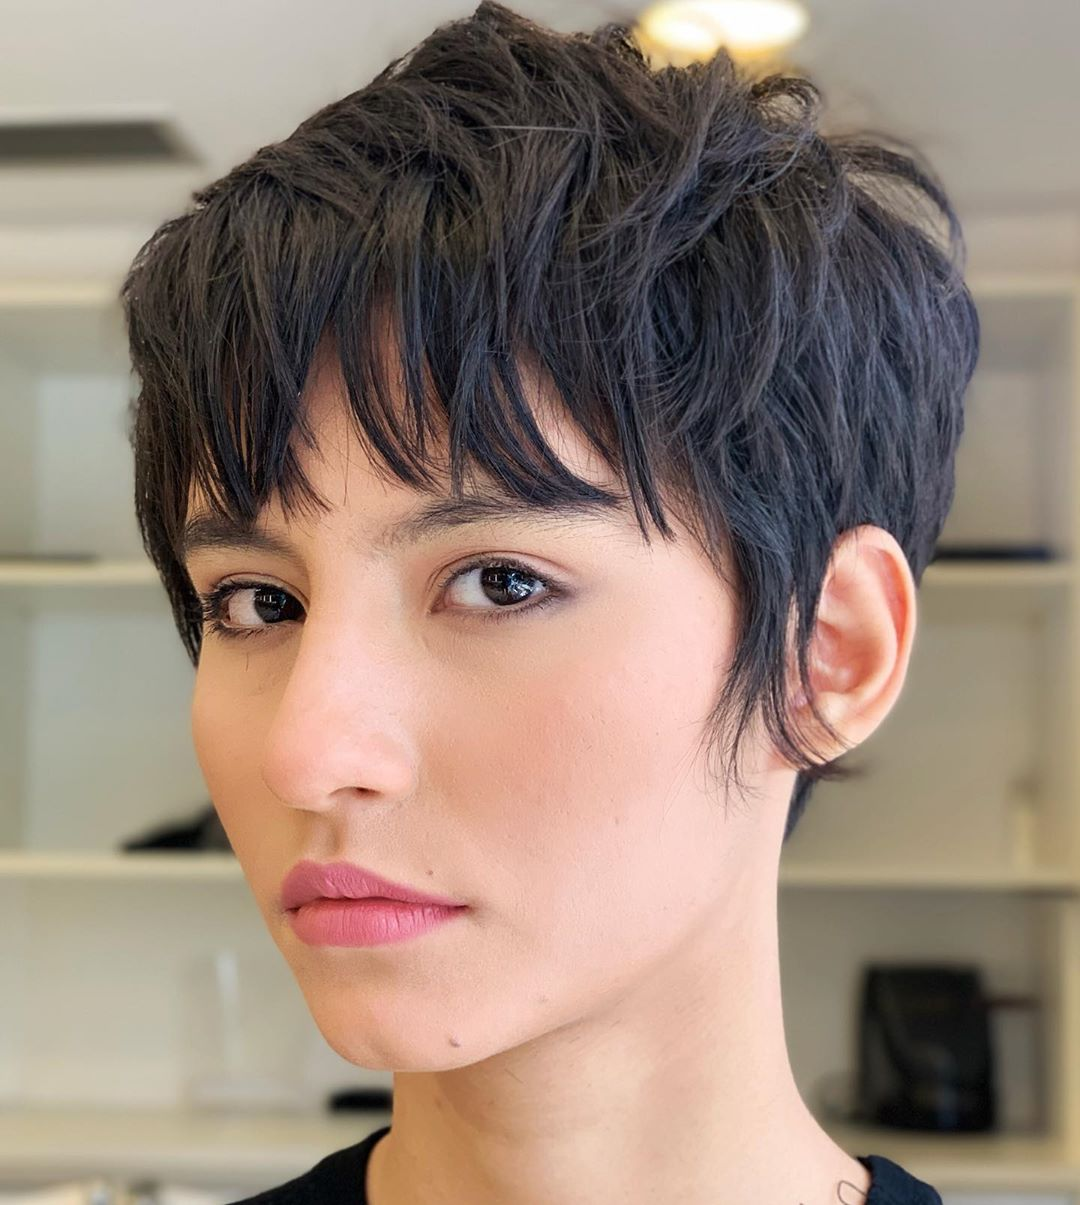 50 New Pixie Cut With Bangs Ideas For The Current Season Hair Adviser